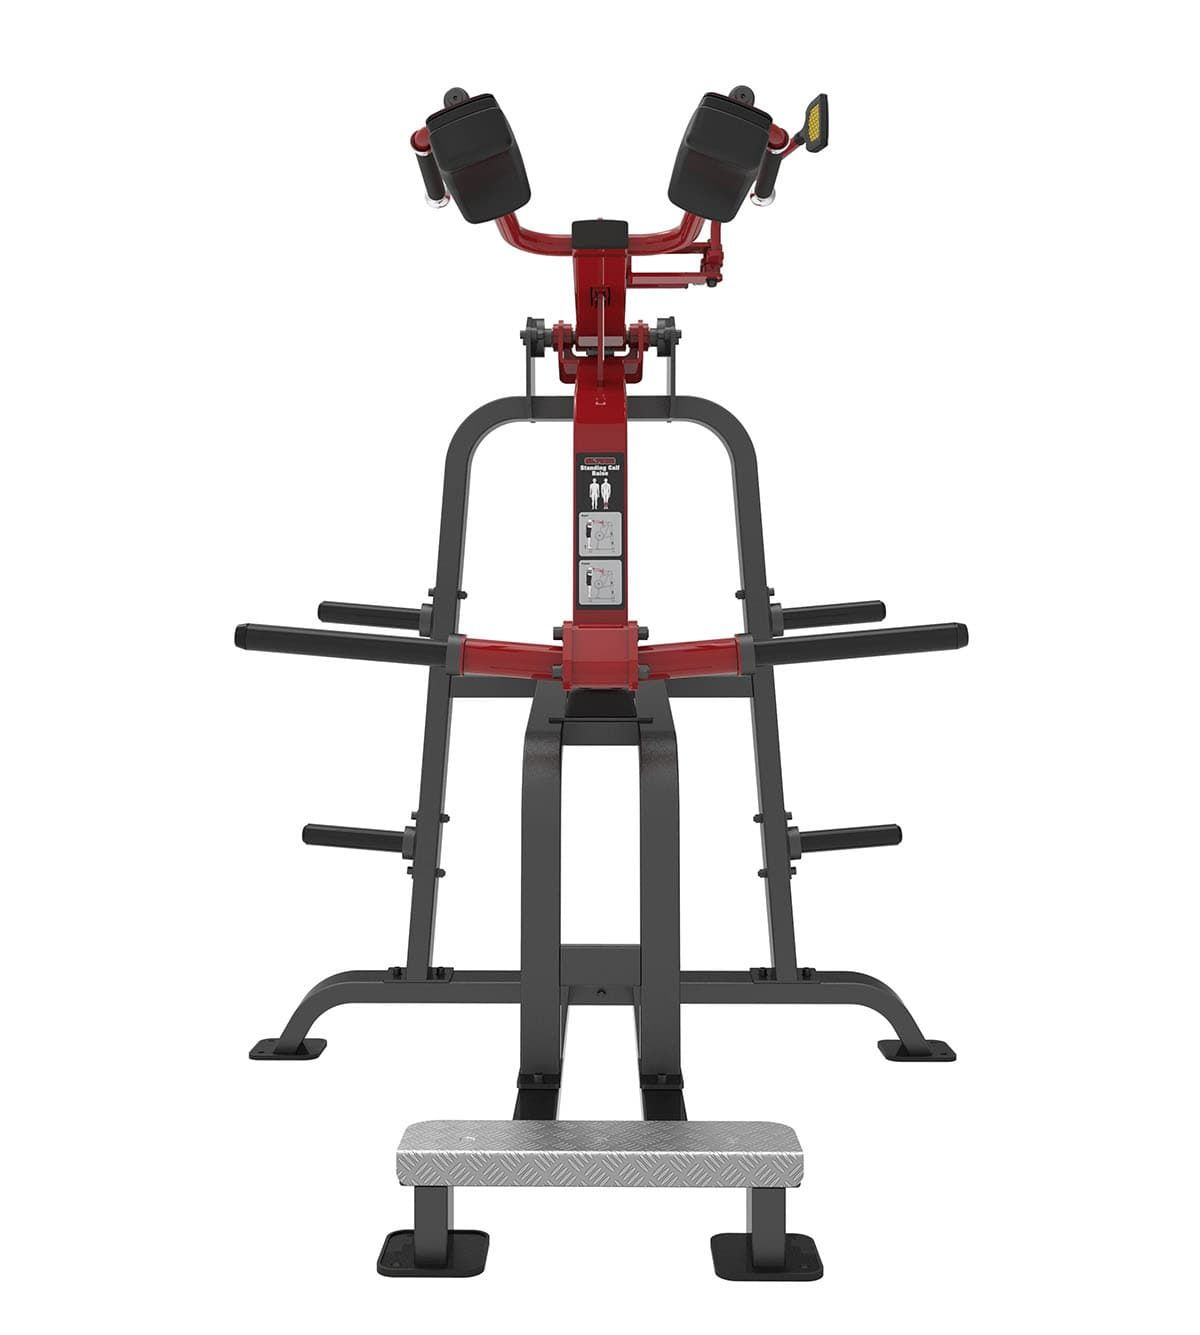 Икроножные стоя Aerofit Professional Impulse Sterling SL7032. Фото N3